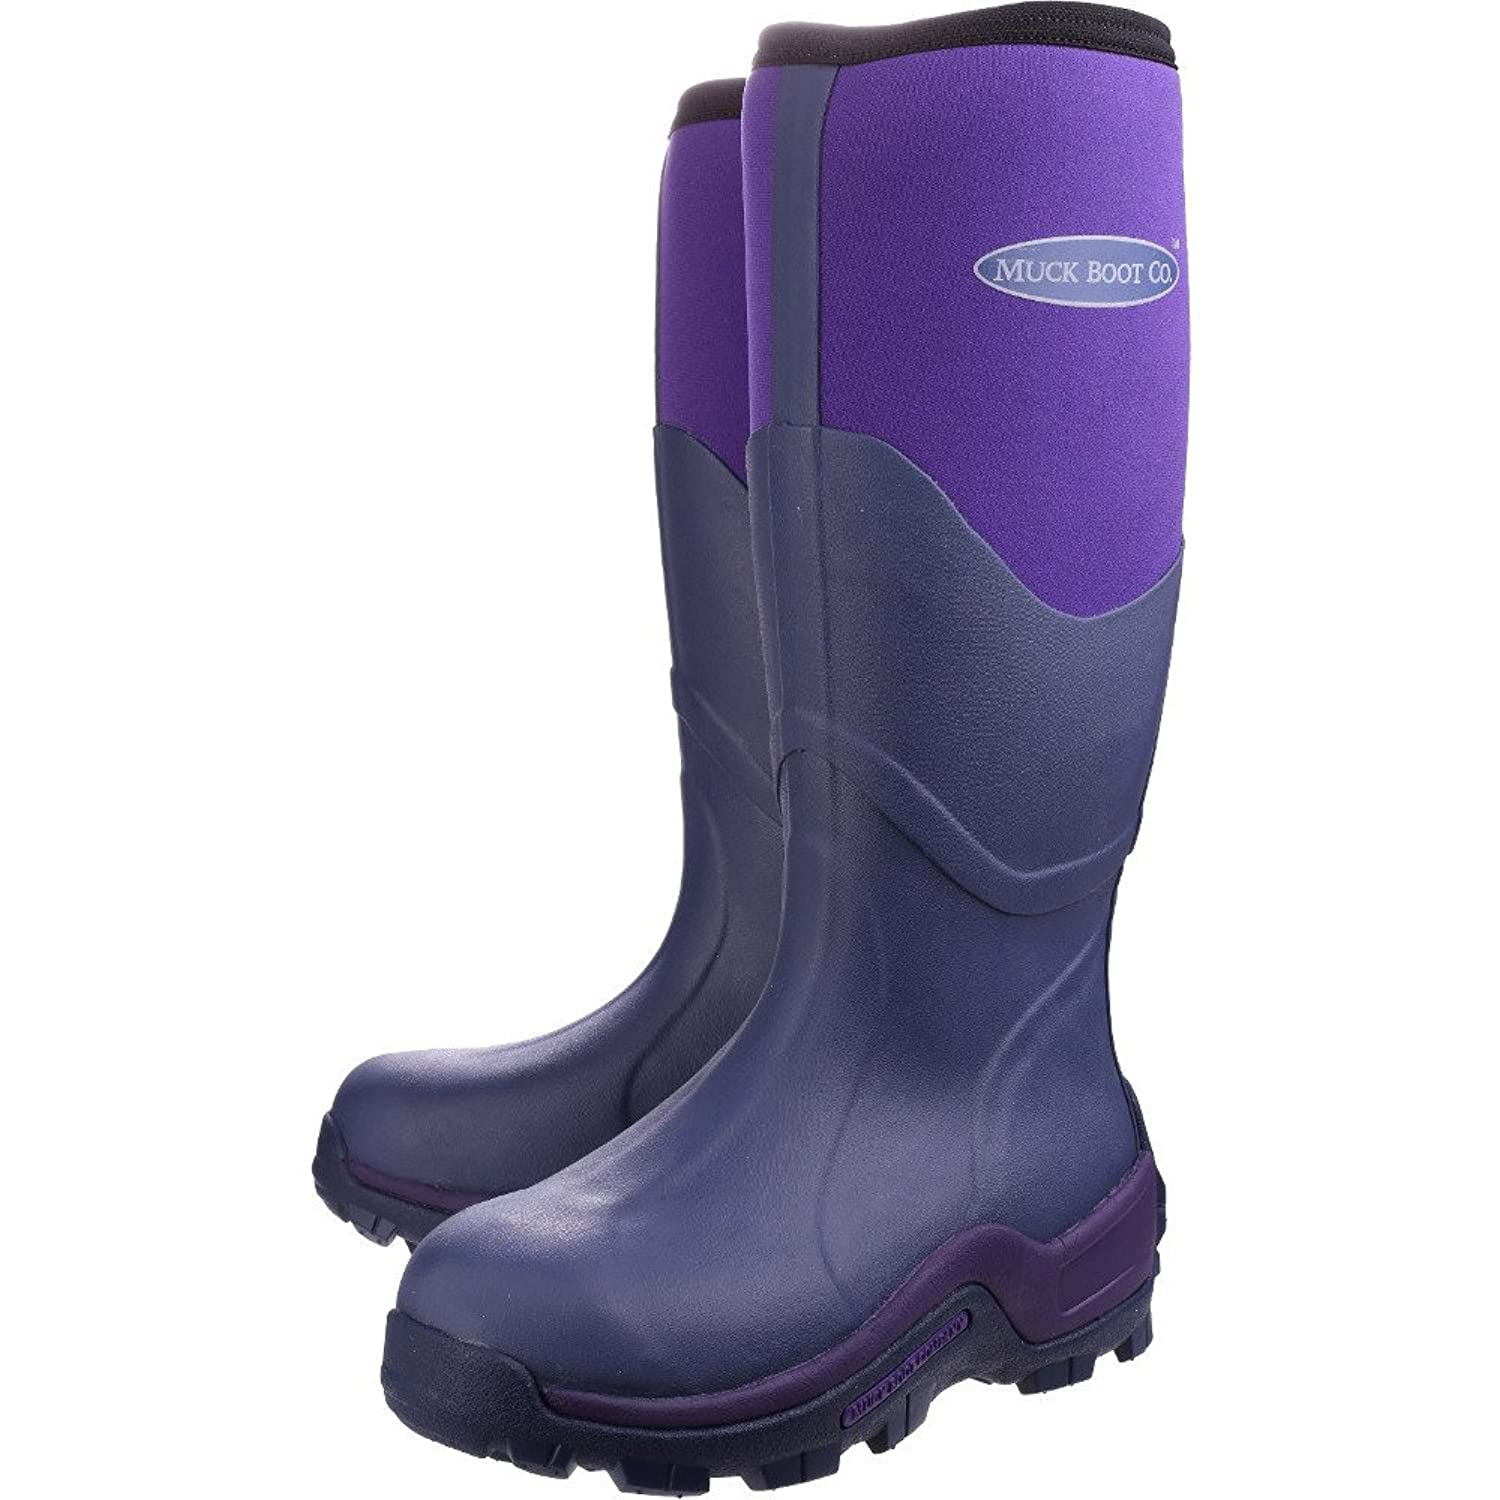 Muck Boot Womens Purple 'Greta' Wellington Boots: Amazon.co.uk: Shoes & Bags